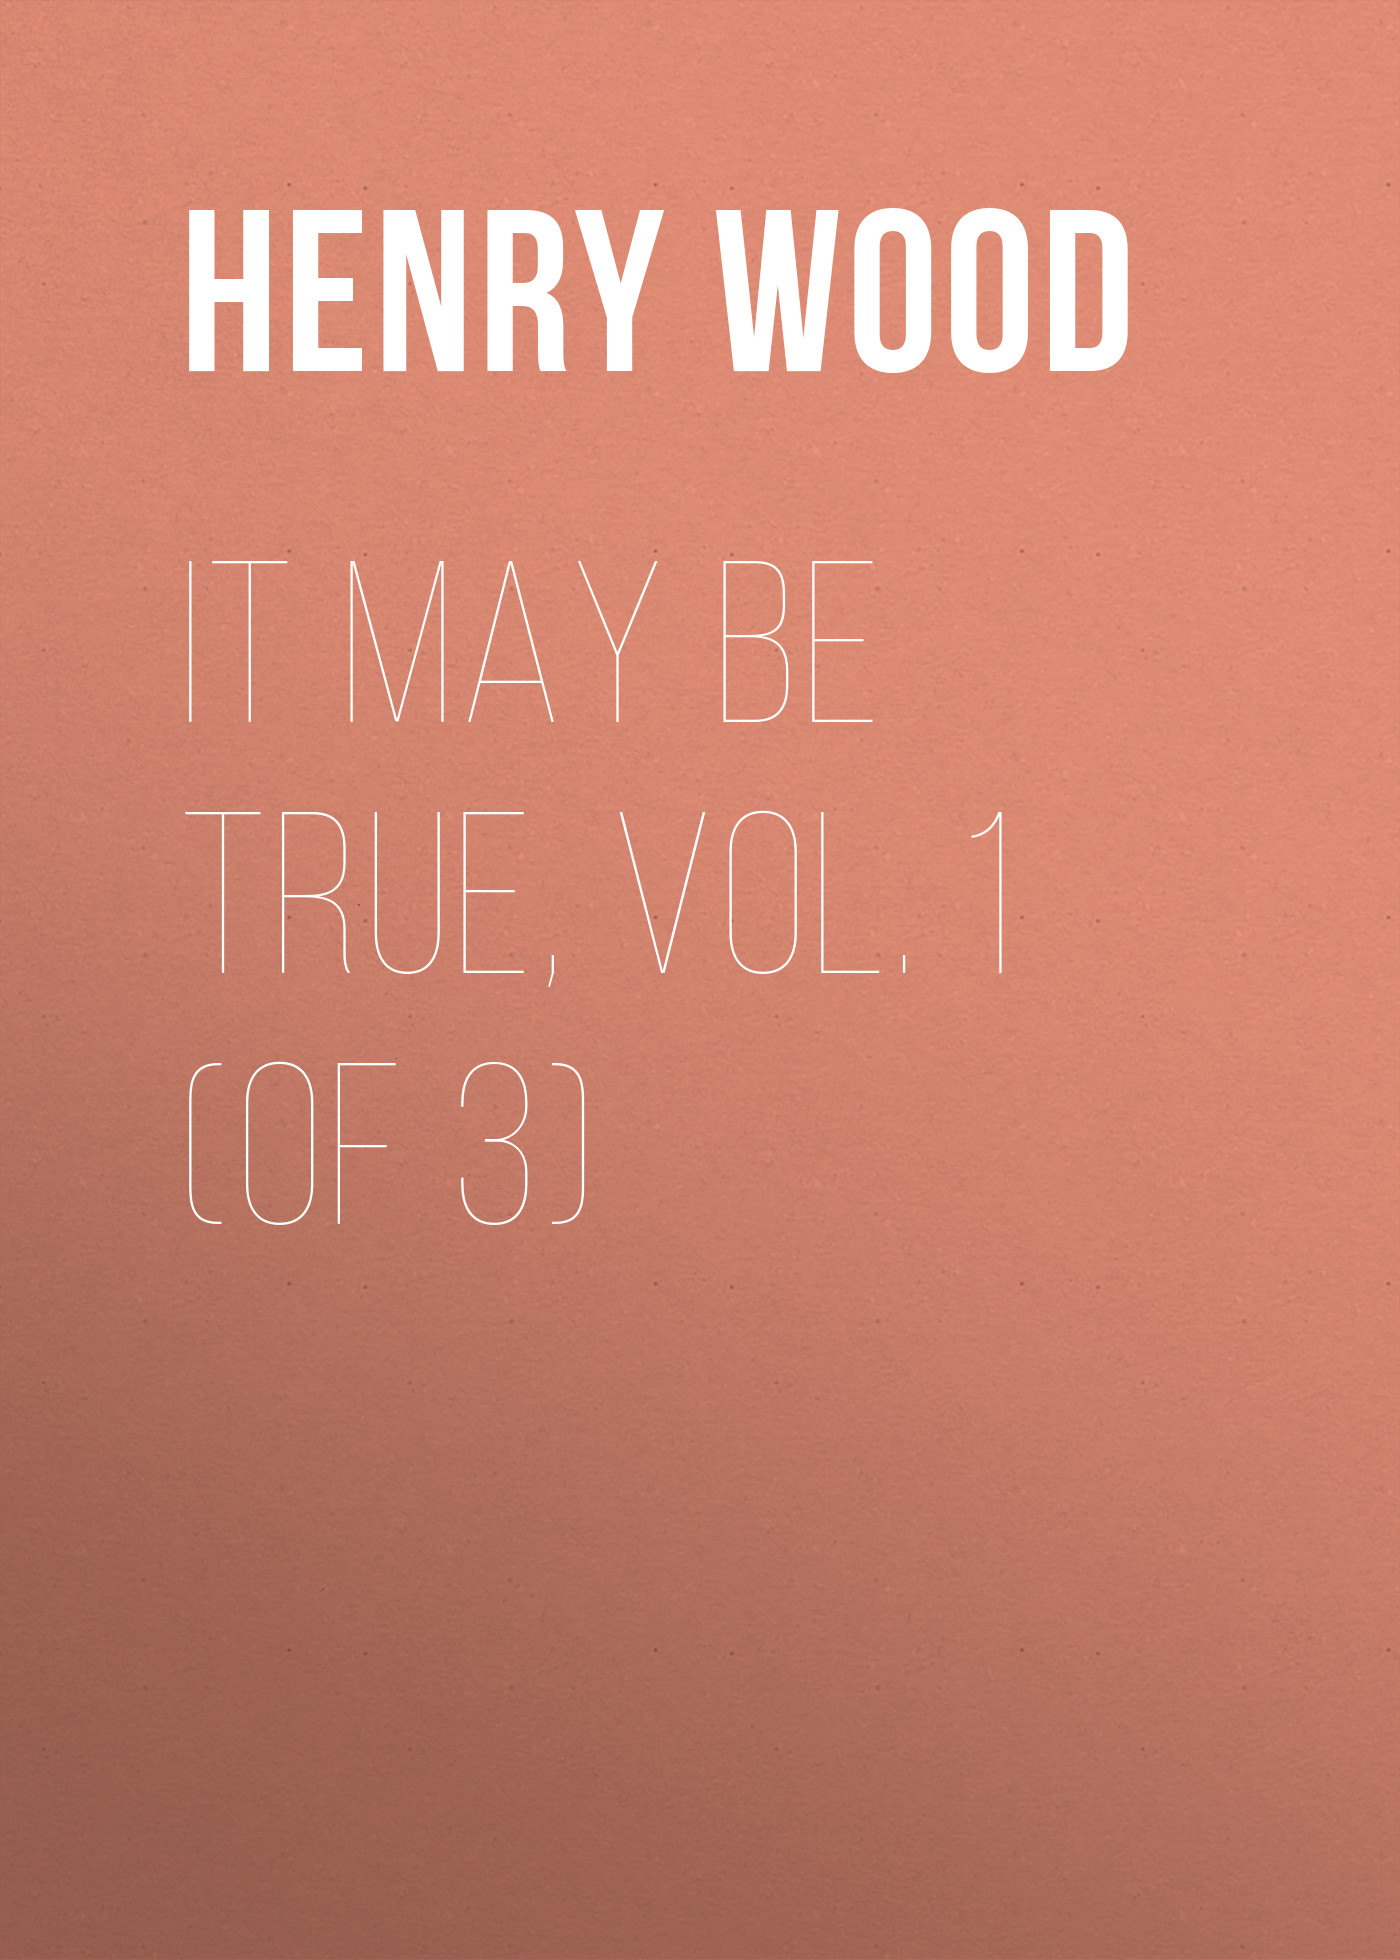 Henry Wood It May Be True, Vol. 1 (of 3) henry wood the story of charles strange vol 1 of 3